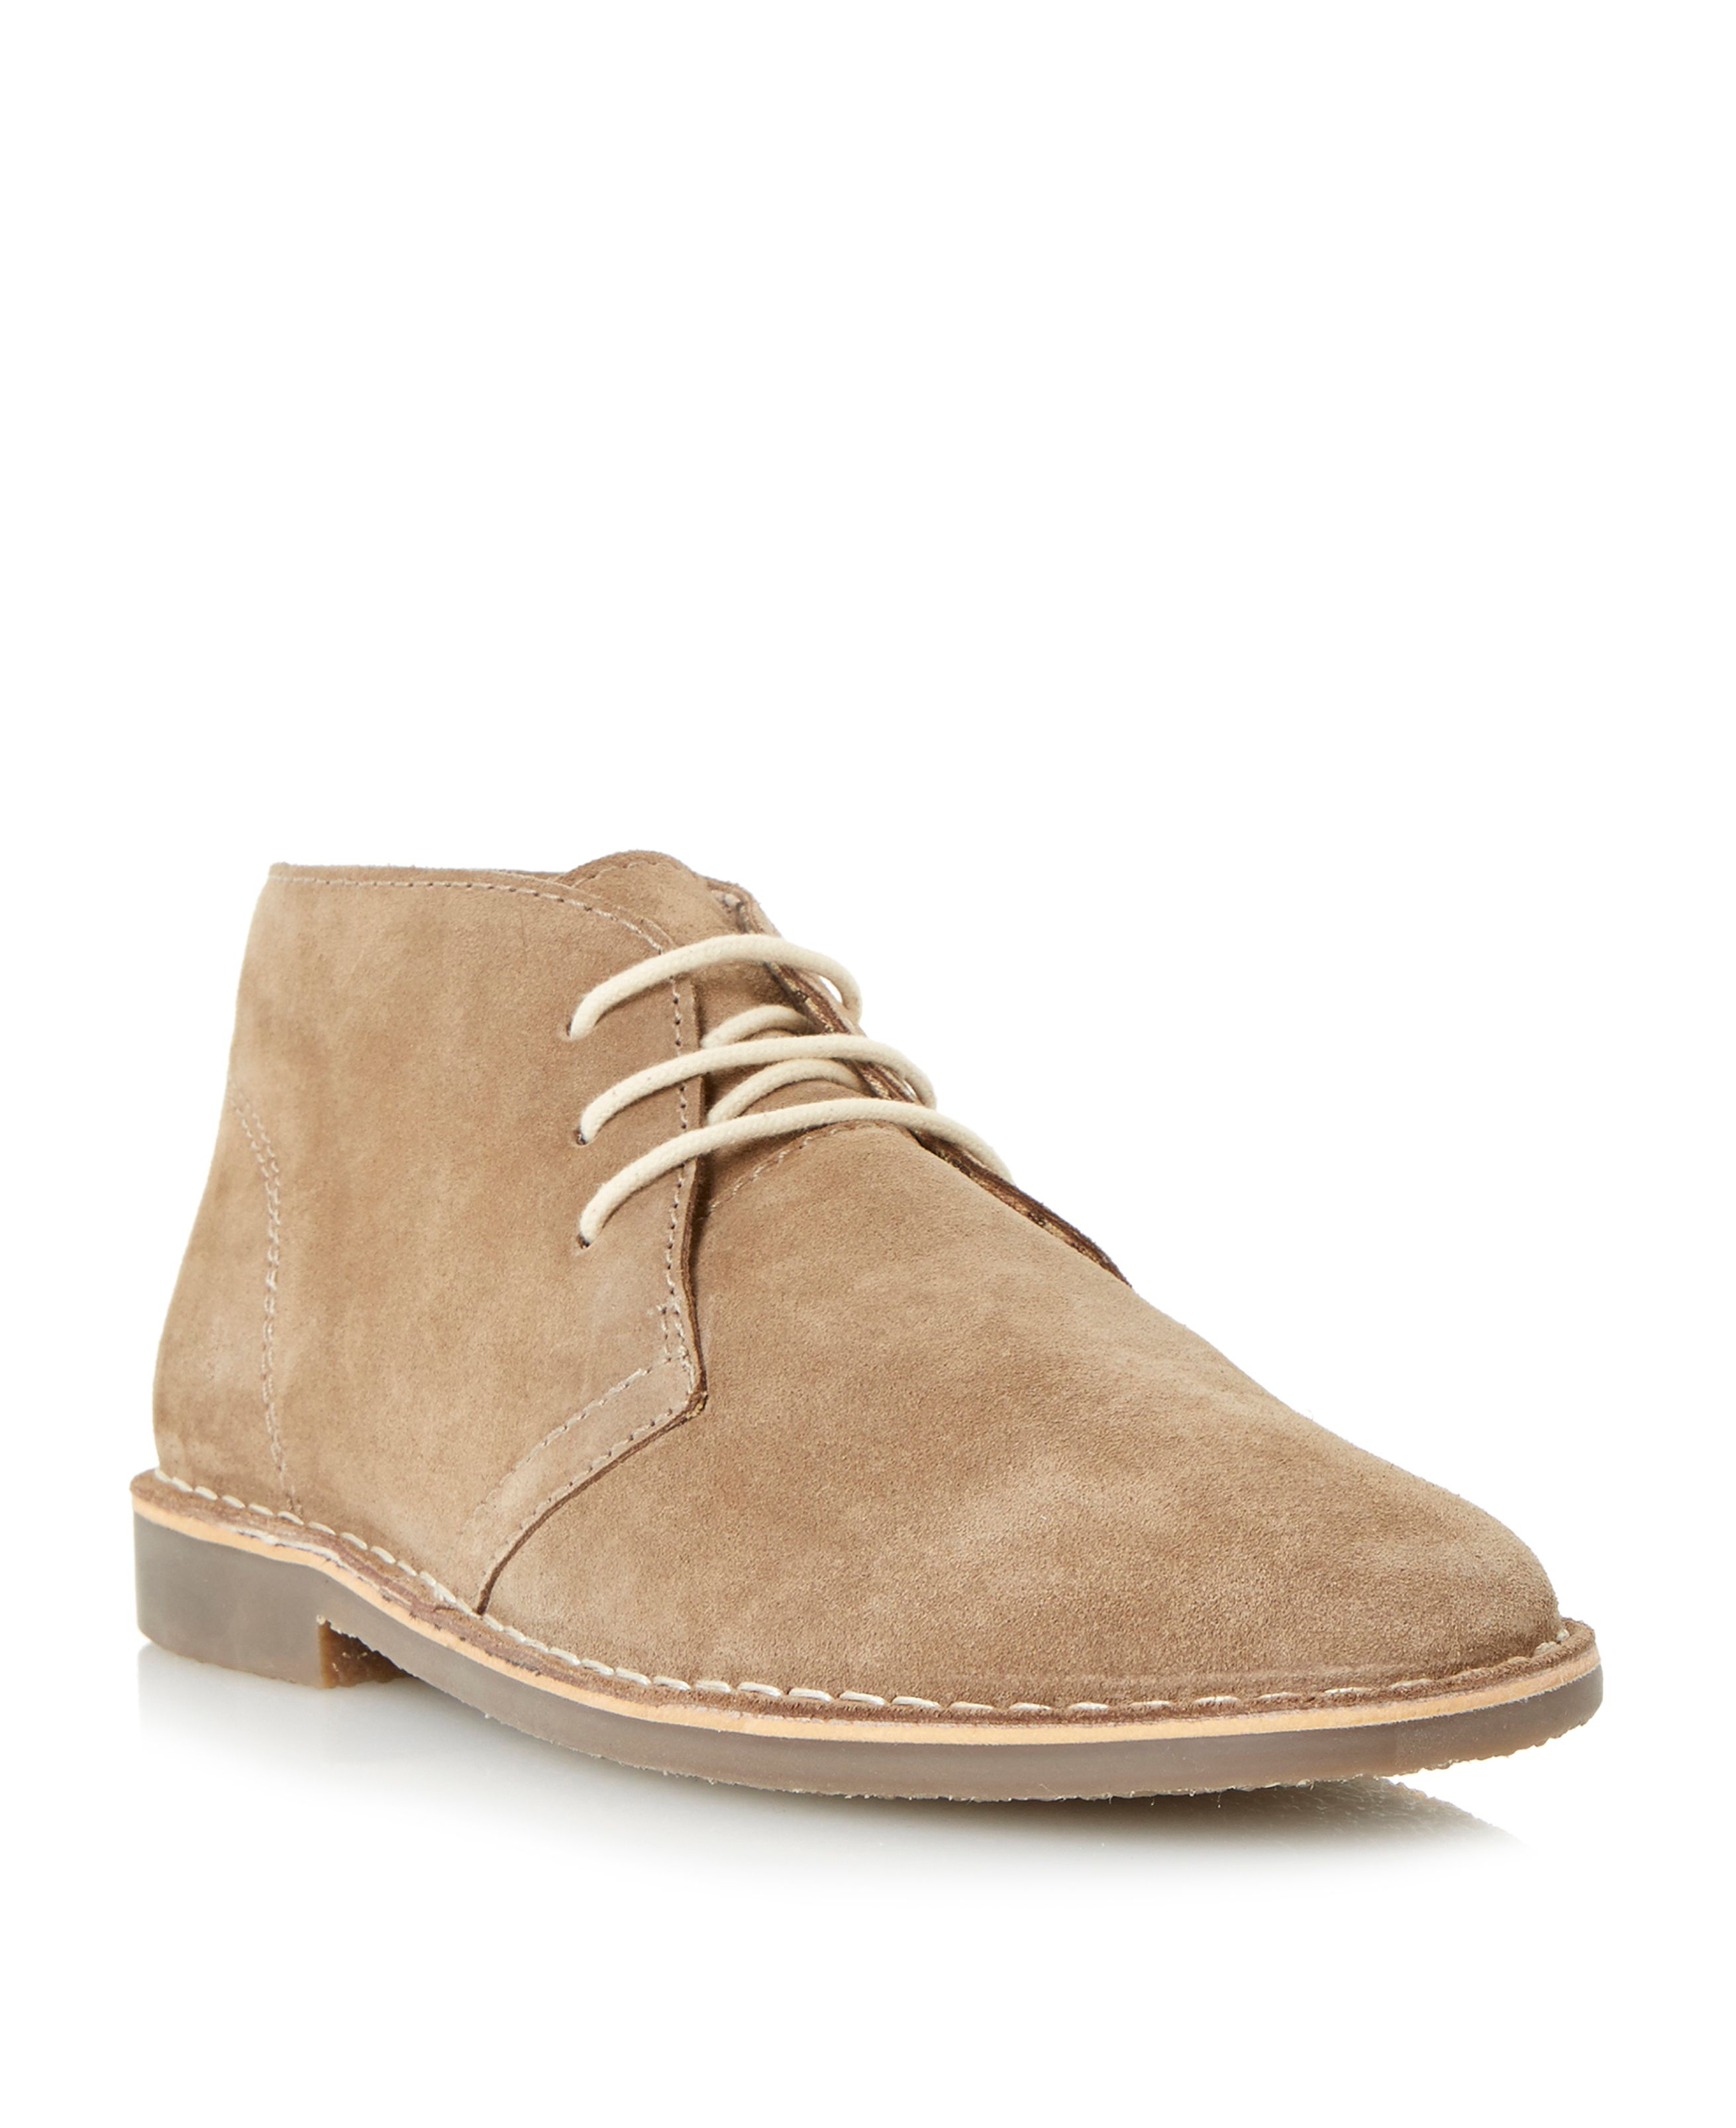 howick hunter casual desert boots in natural for men lyst. Black Bedroom Furniture Sets. Home Design Ideas